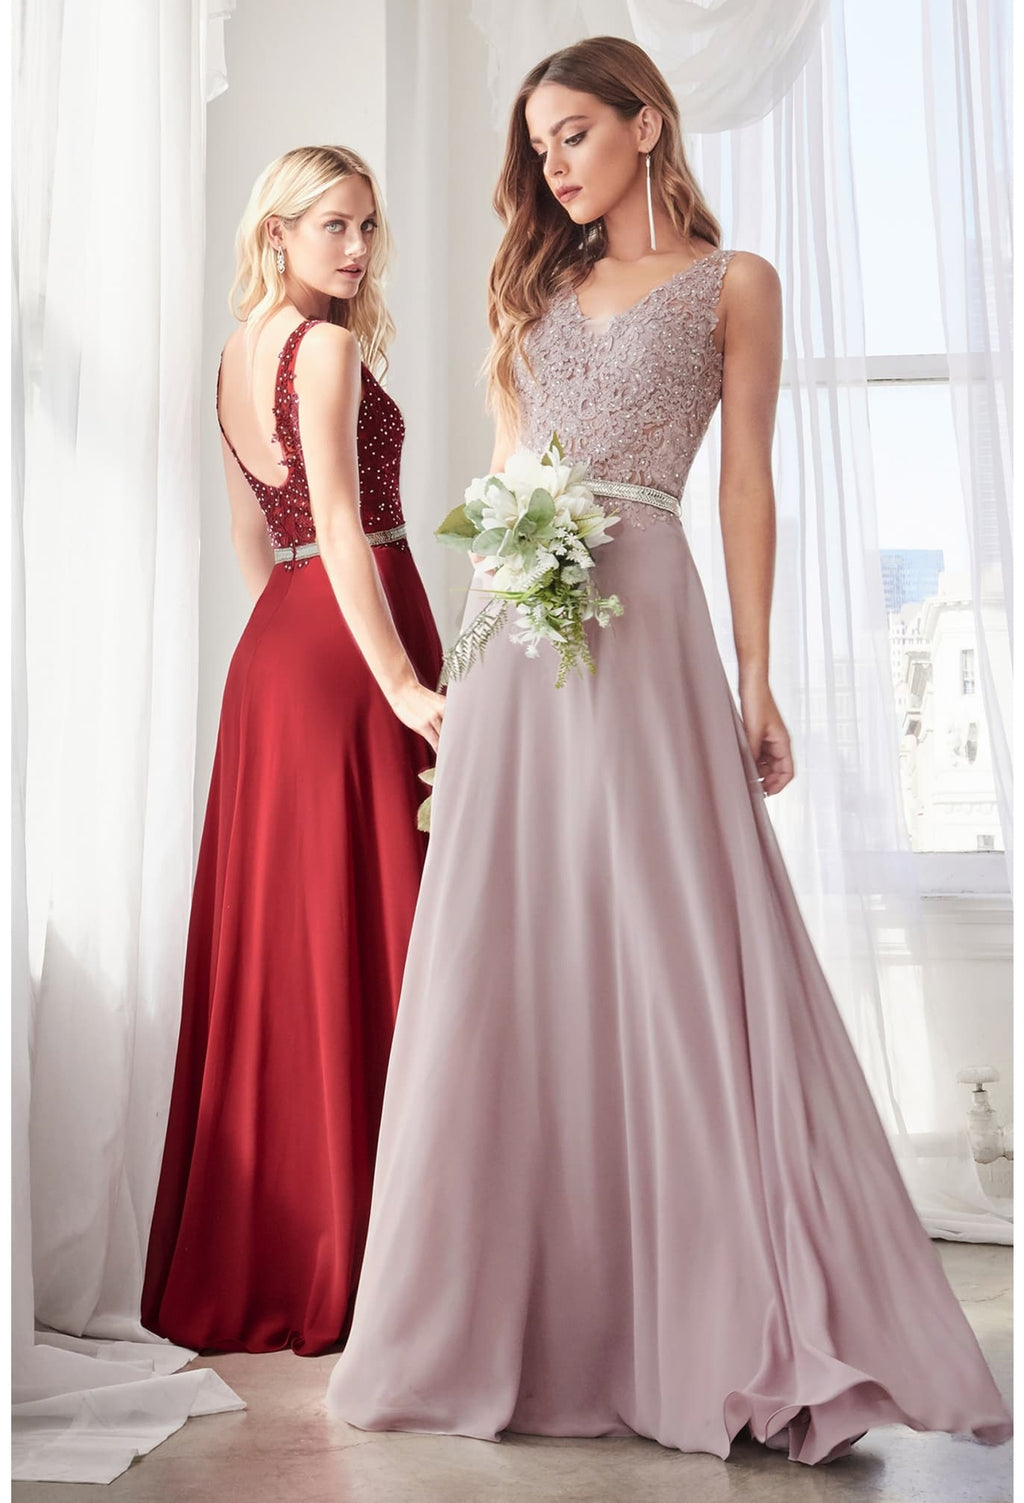 A-line chiffon gown with embellished lace bodice and belt